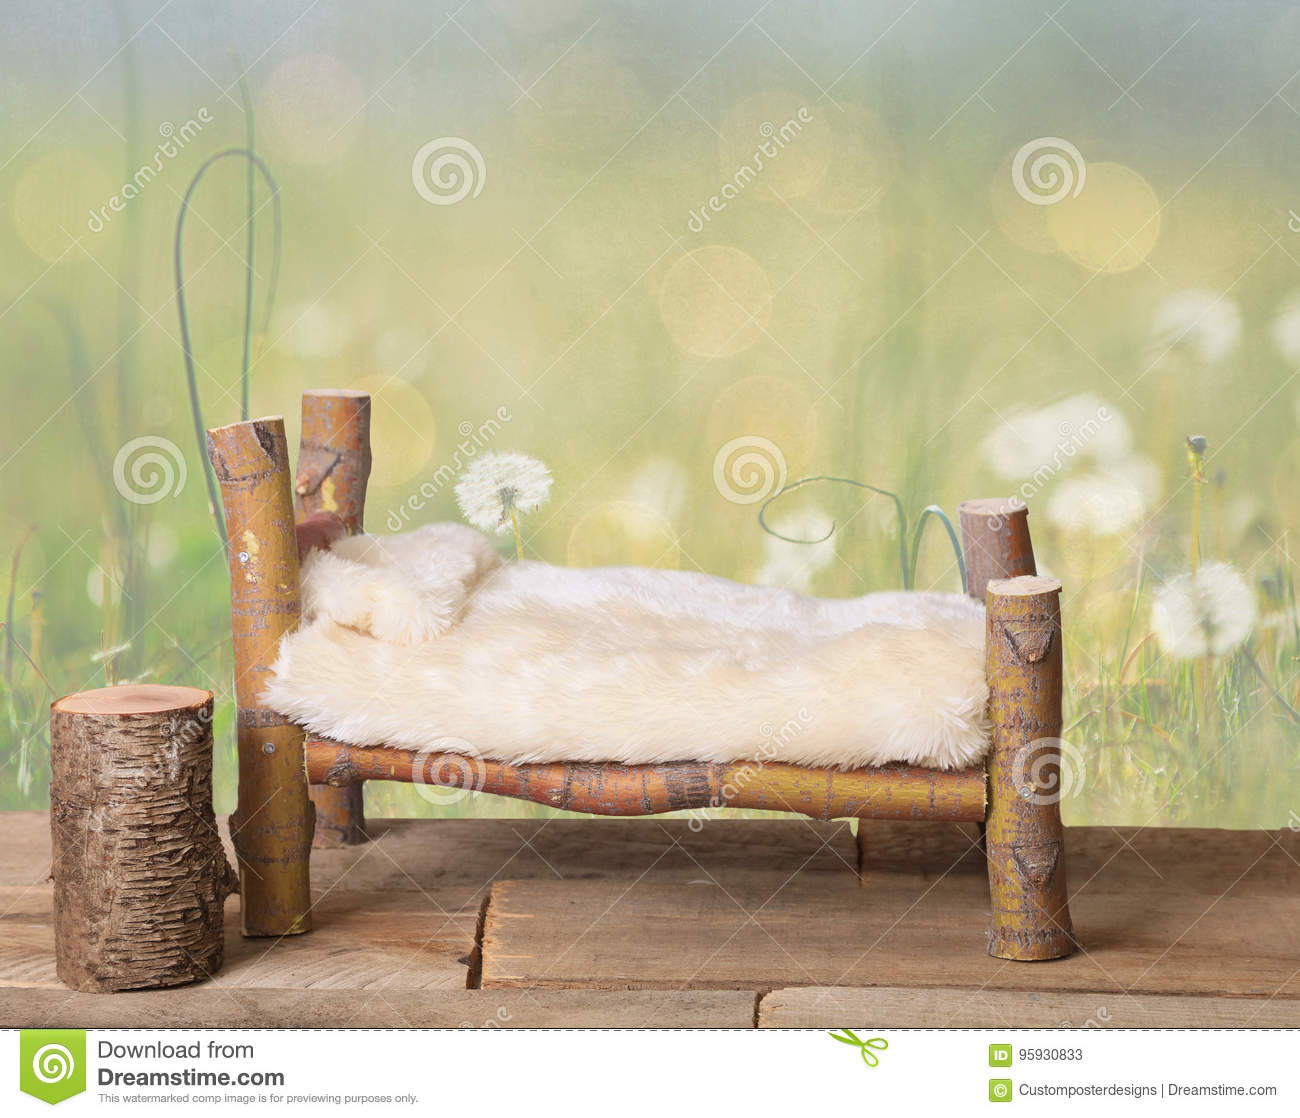 Download A Newborn Bed Studio Digital Prop Made From Japanese Maple Tree Branches With A Dandelion Green Meadow Nature Background. Stock Image - Image of designed, baby: 95930833